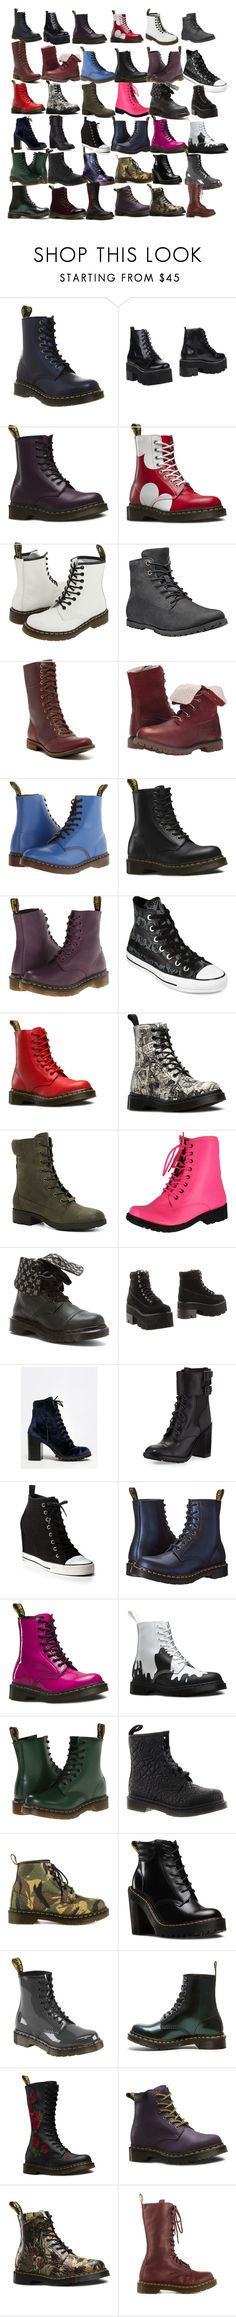 """""""May's Shoe collection :)"""" by nerissa-kirkland ❤ liked on Polyvore featuring Dr. Martens, Jeffrey Campbell, Timberland, Converse, ALDO, Qupid, Report, Tory Burch, DKNY and bored"""